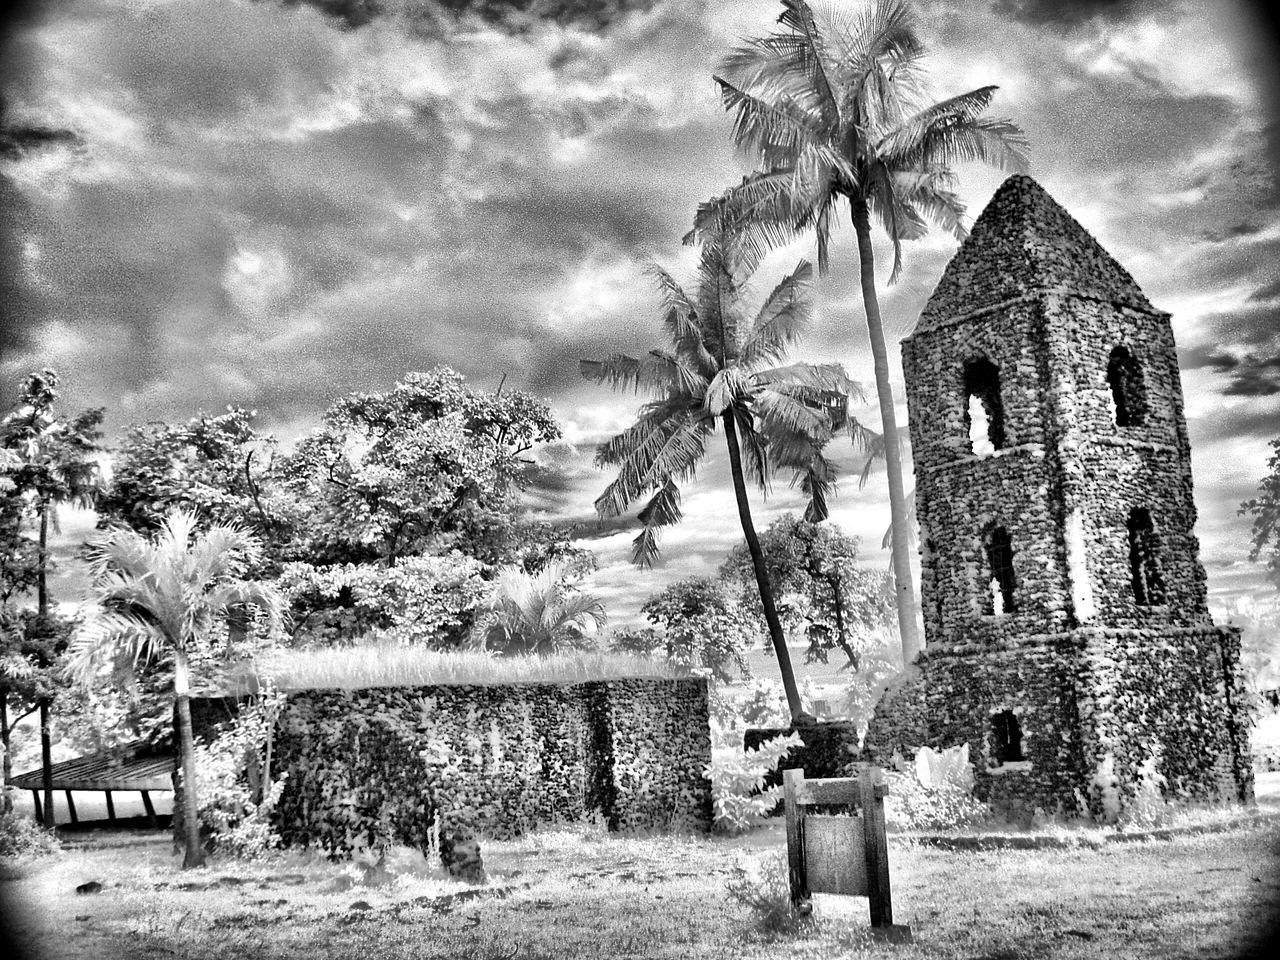 Church replica Architecture Built Structure Building Exterior Church Sky Place Of Worship Outdoors Infraredphotography